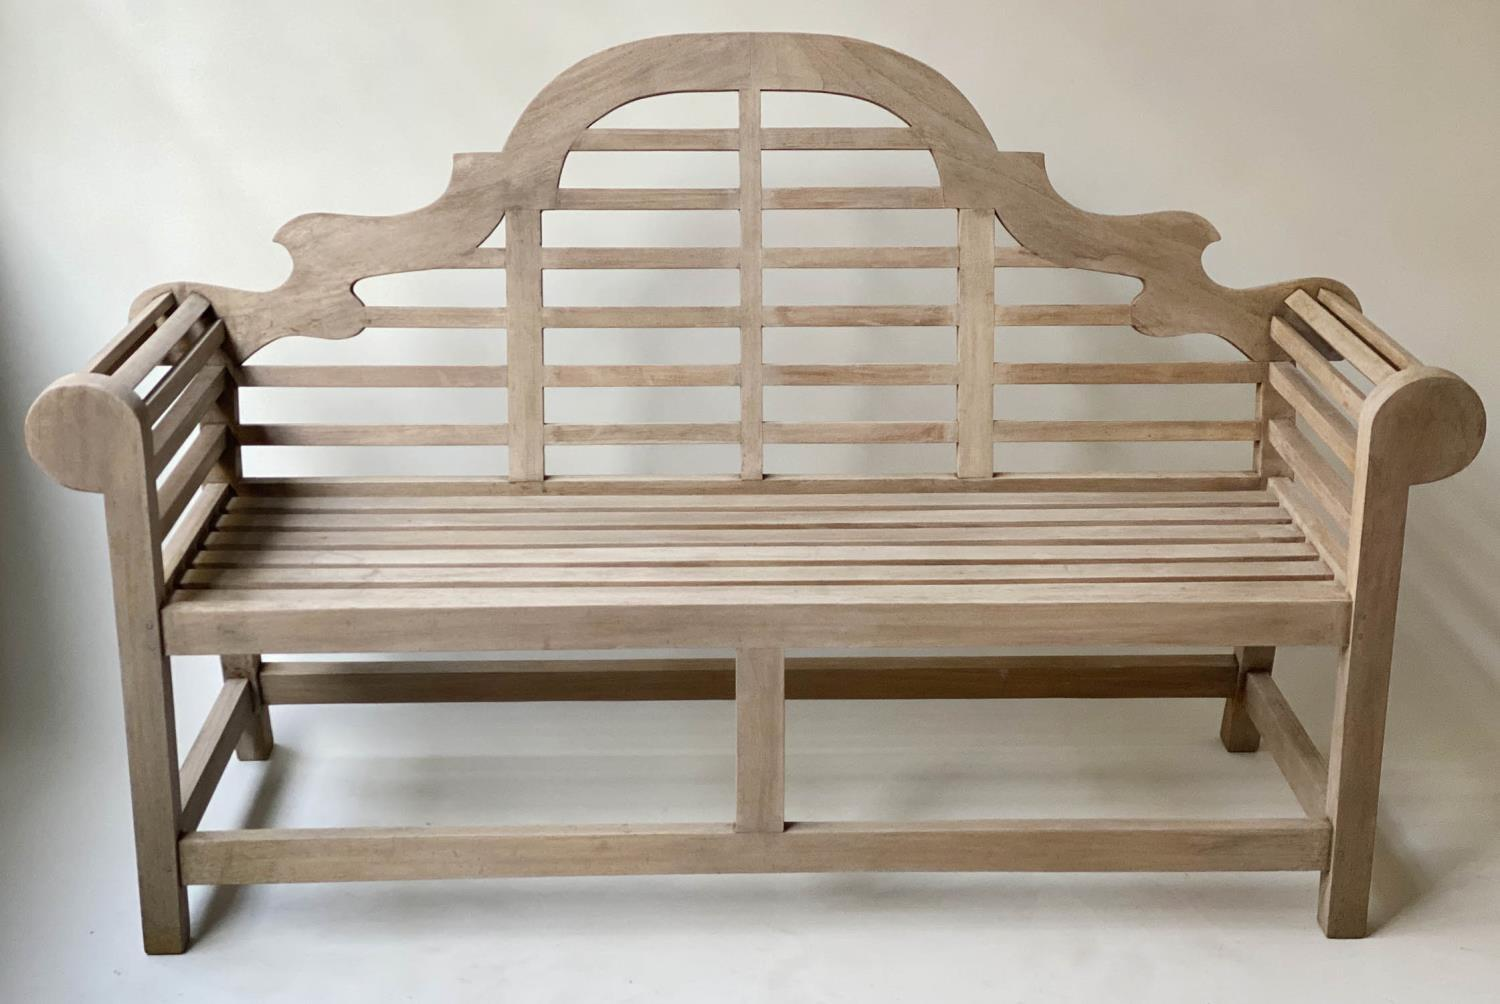 LUTYENS STYLE GARDEN BENCH, matching previous lot, 166cm W.